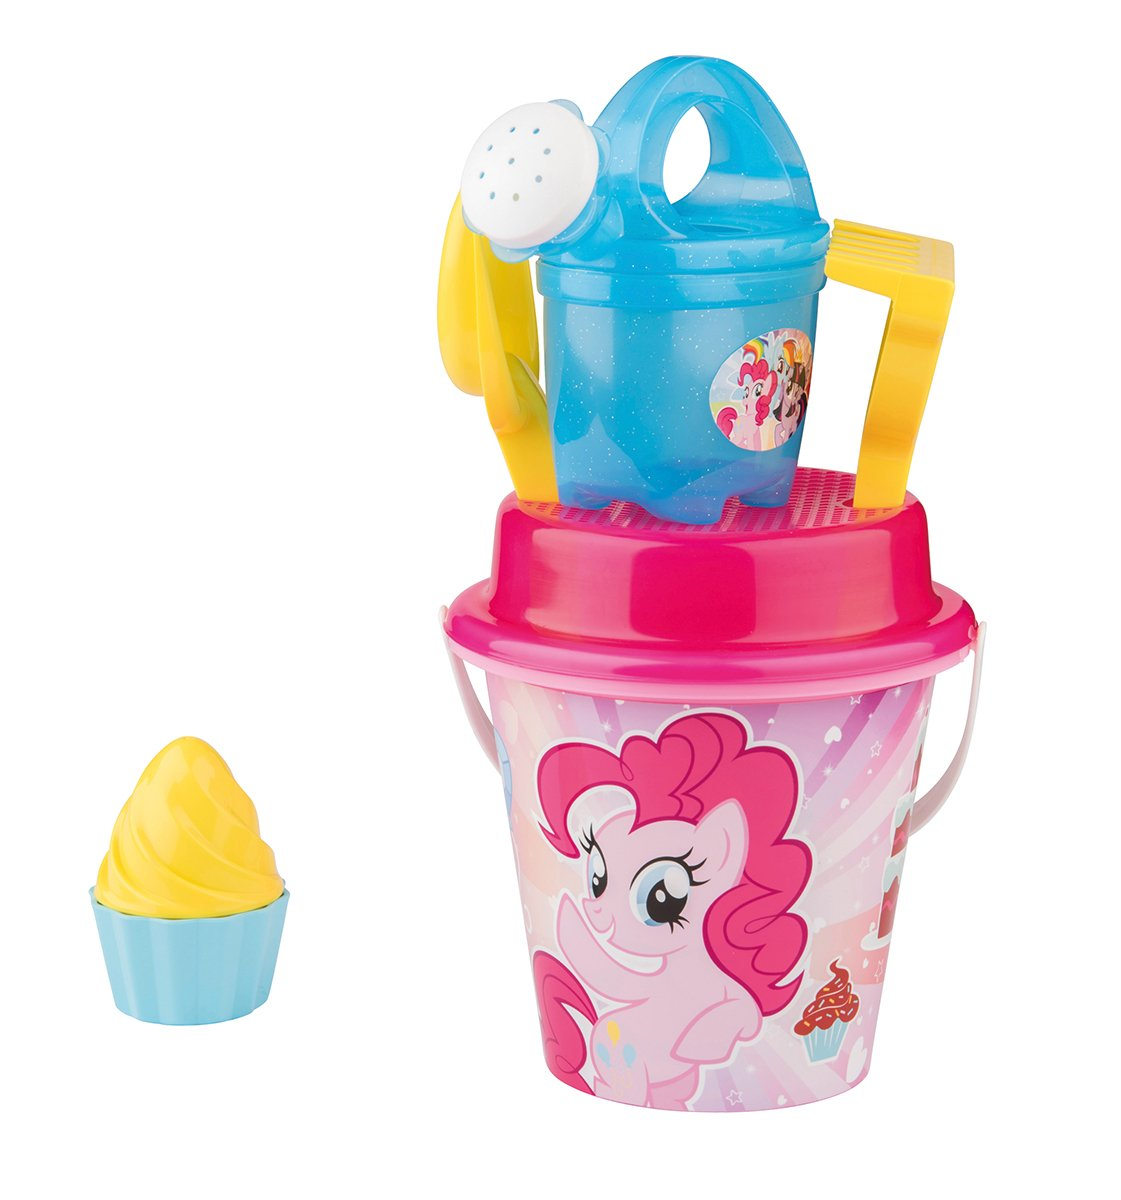 Androni Giocattoli- VD-AND1335-0MLP-Set Mare, My Little Pony, Colore, 107114105